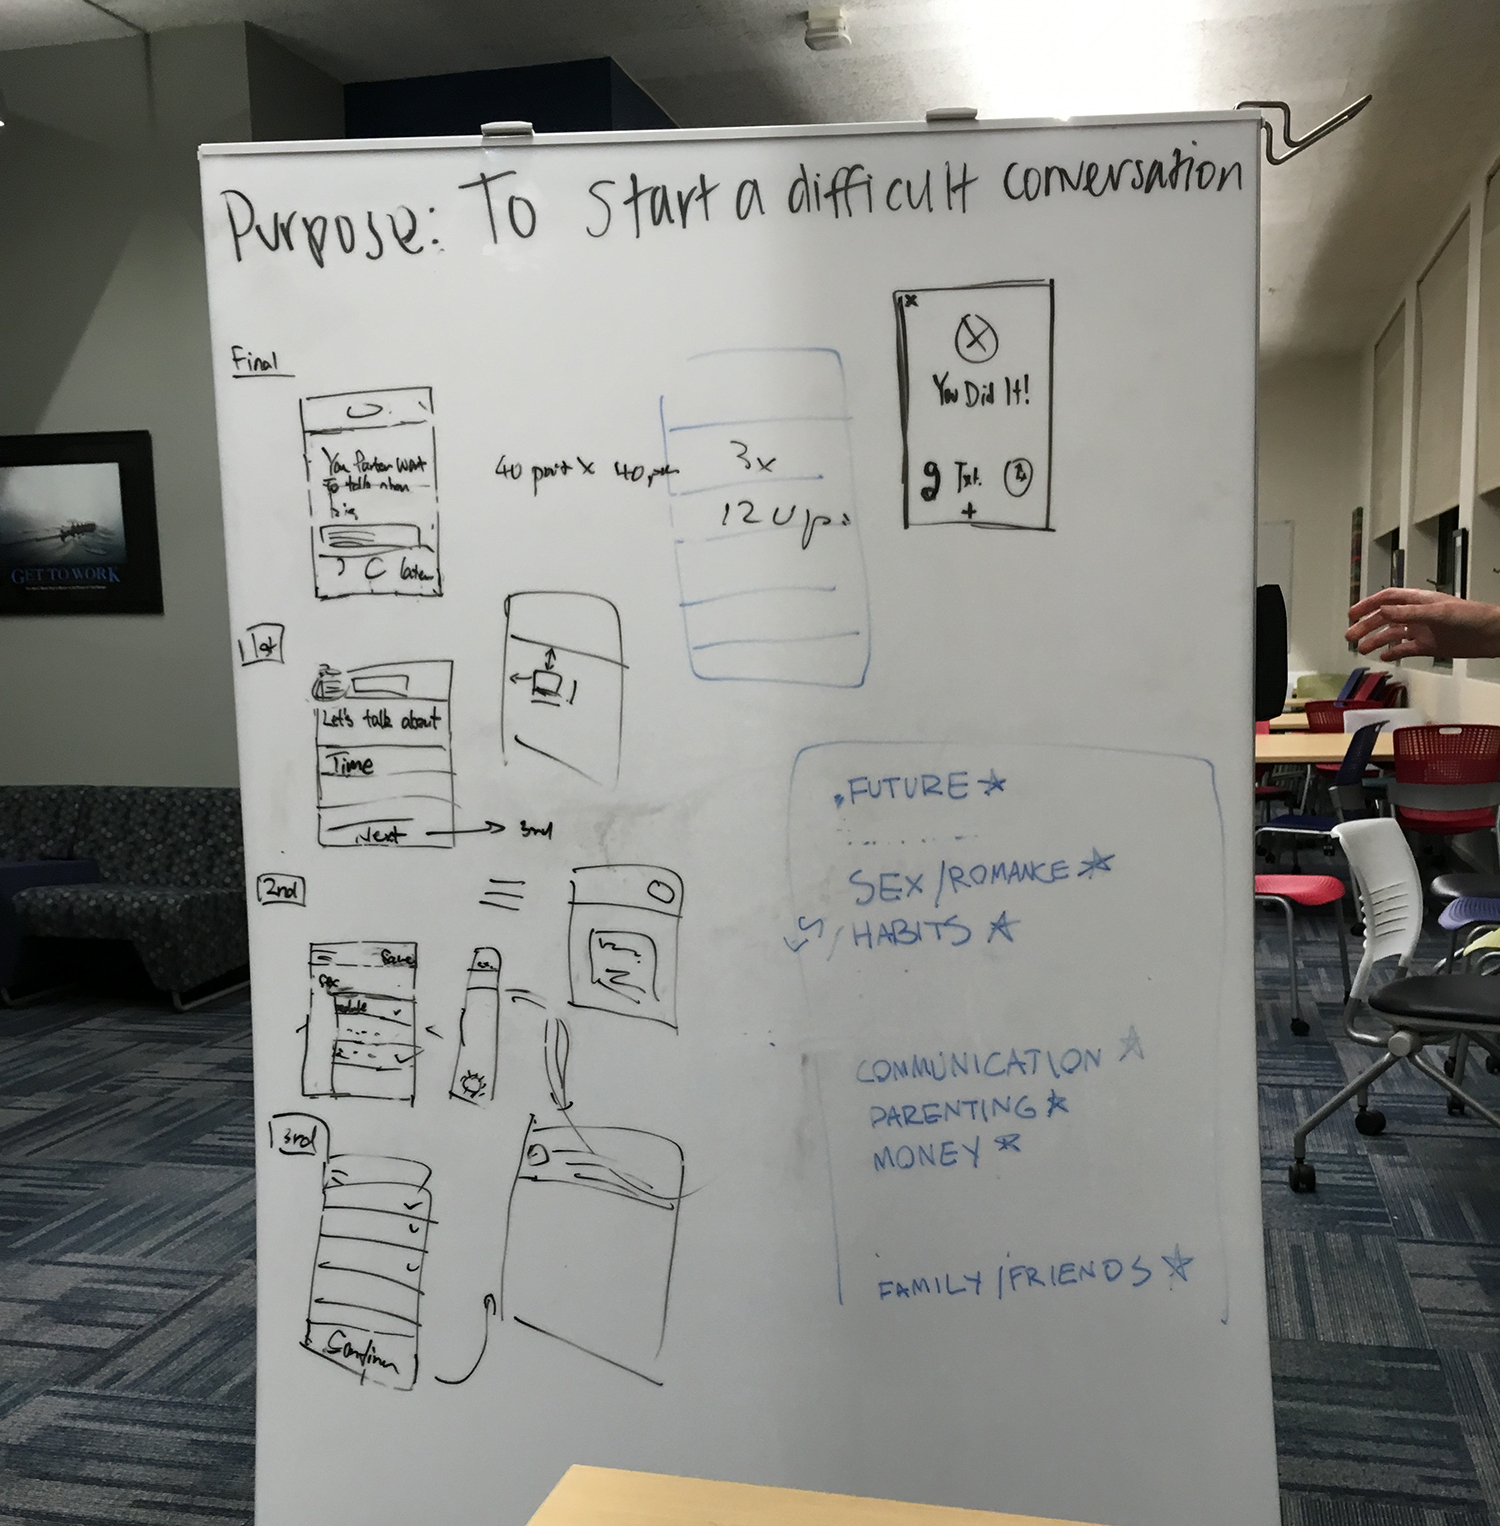 Initial brainstorming of the application's functions and content